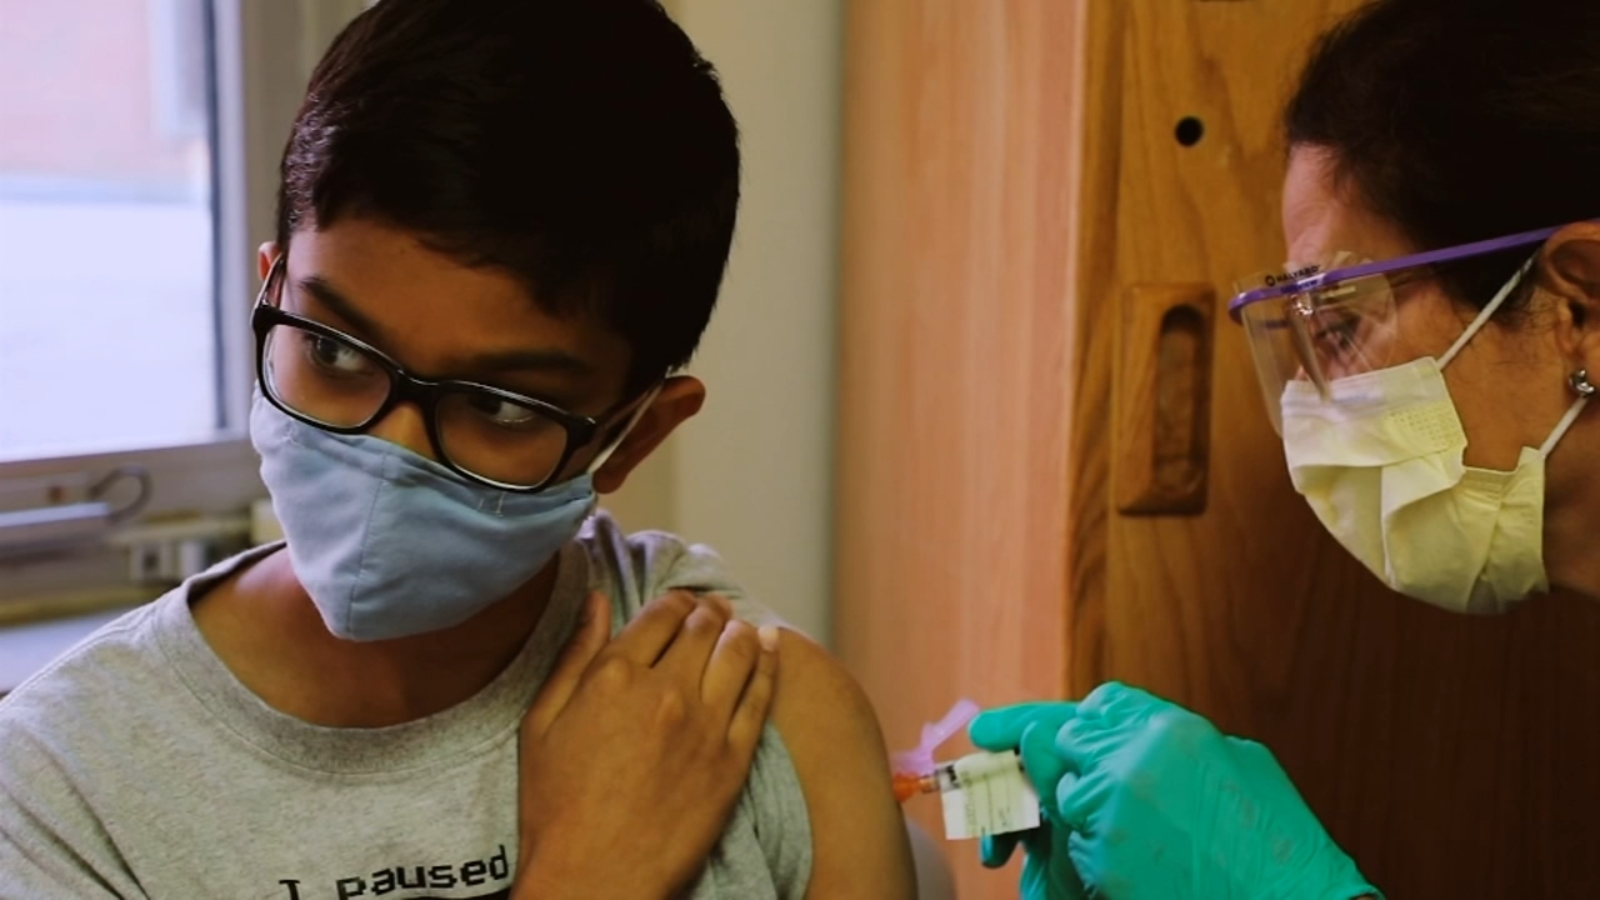 'Going to be very easy': Health officials explain what to expect for vaccinating 12-15 year-olds